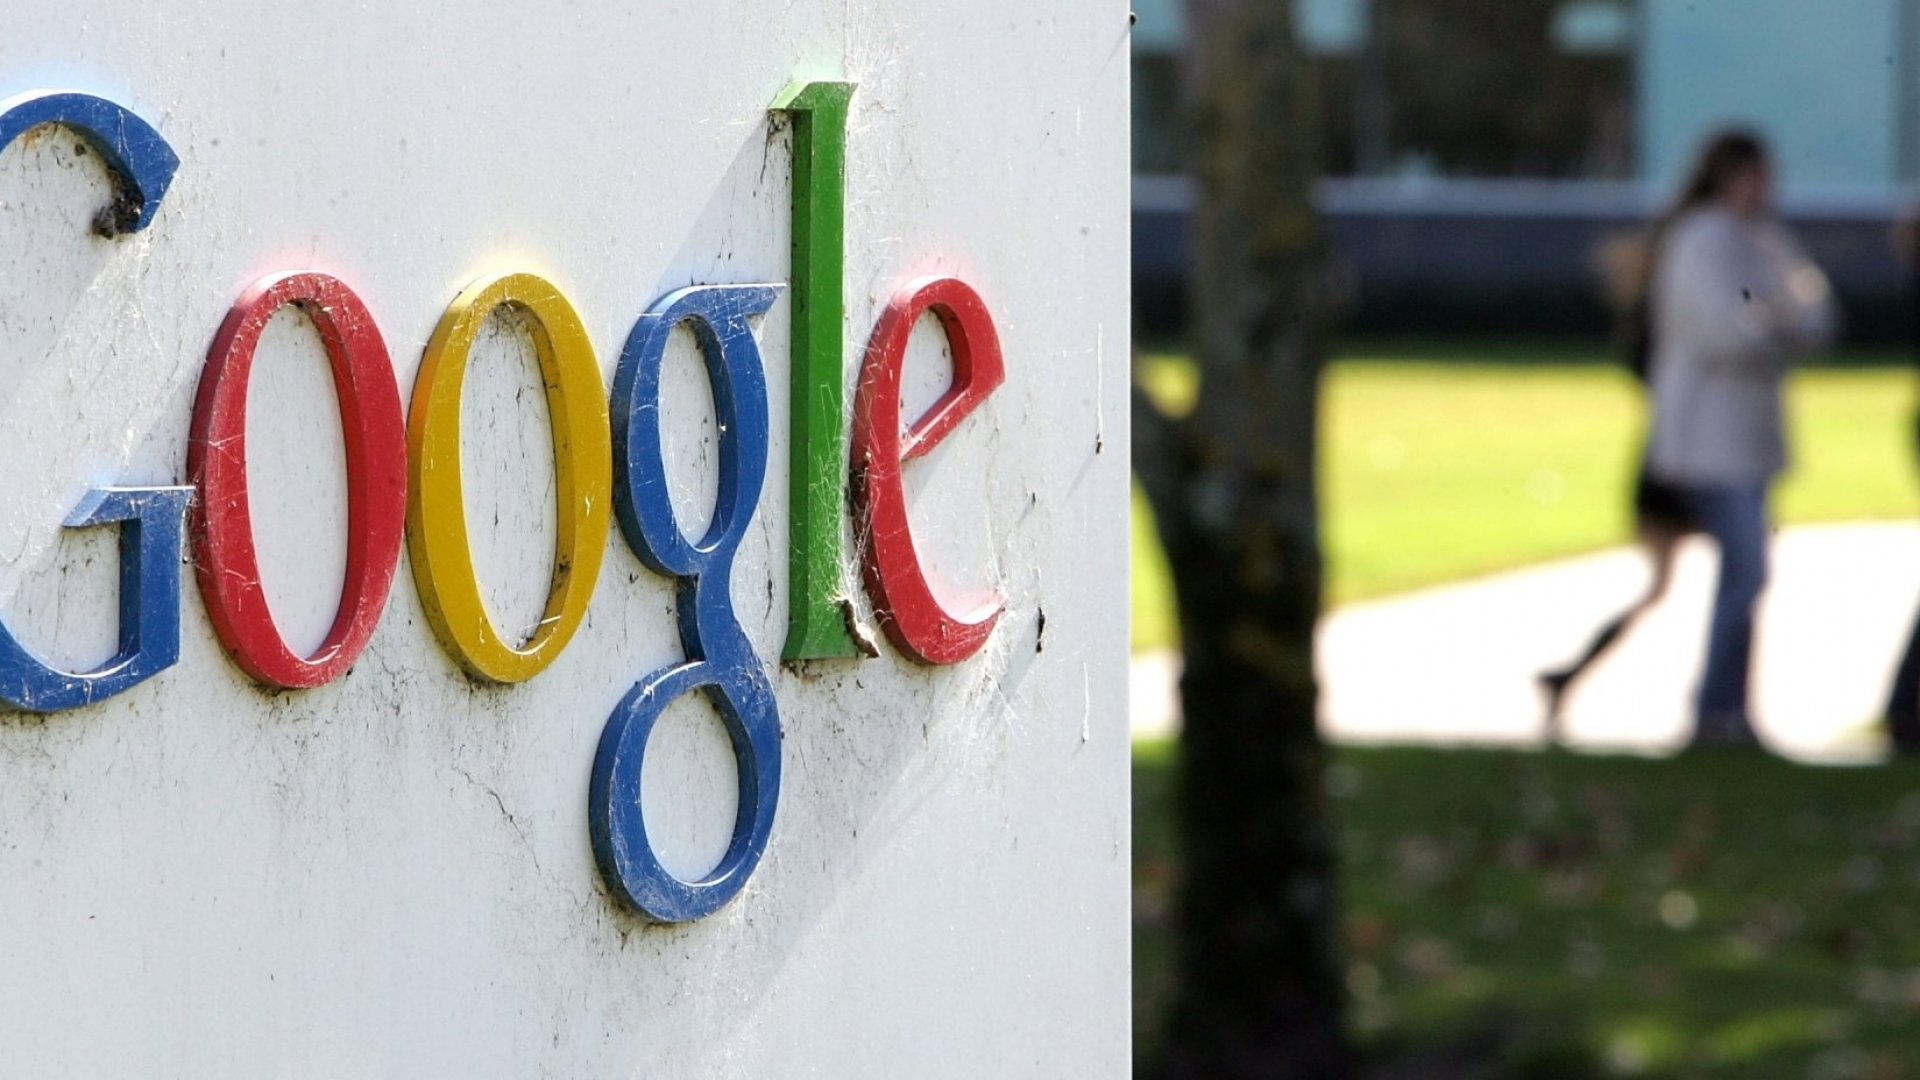 Google Ordered to Hand Over Records on Women's Pay